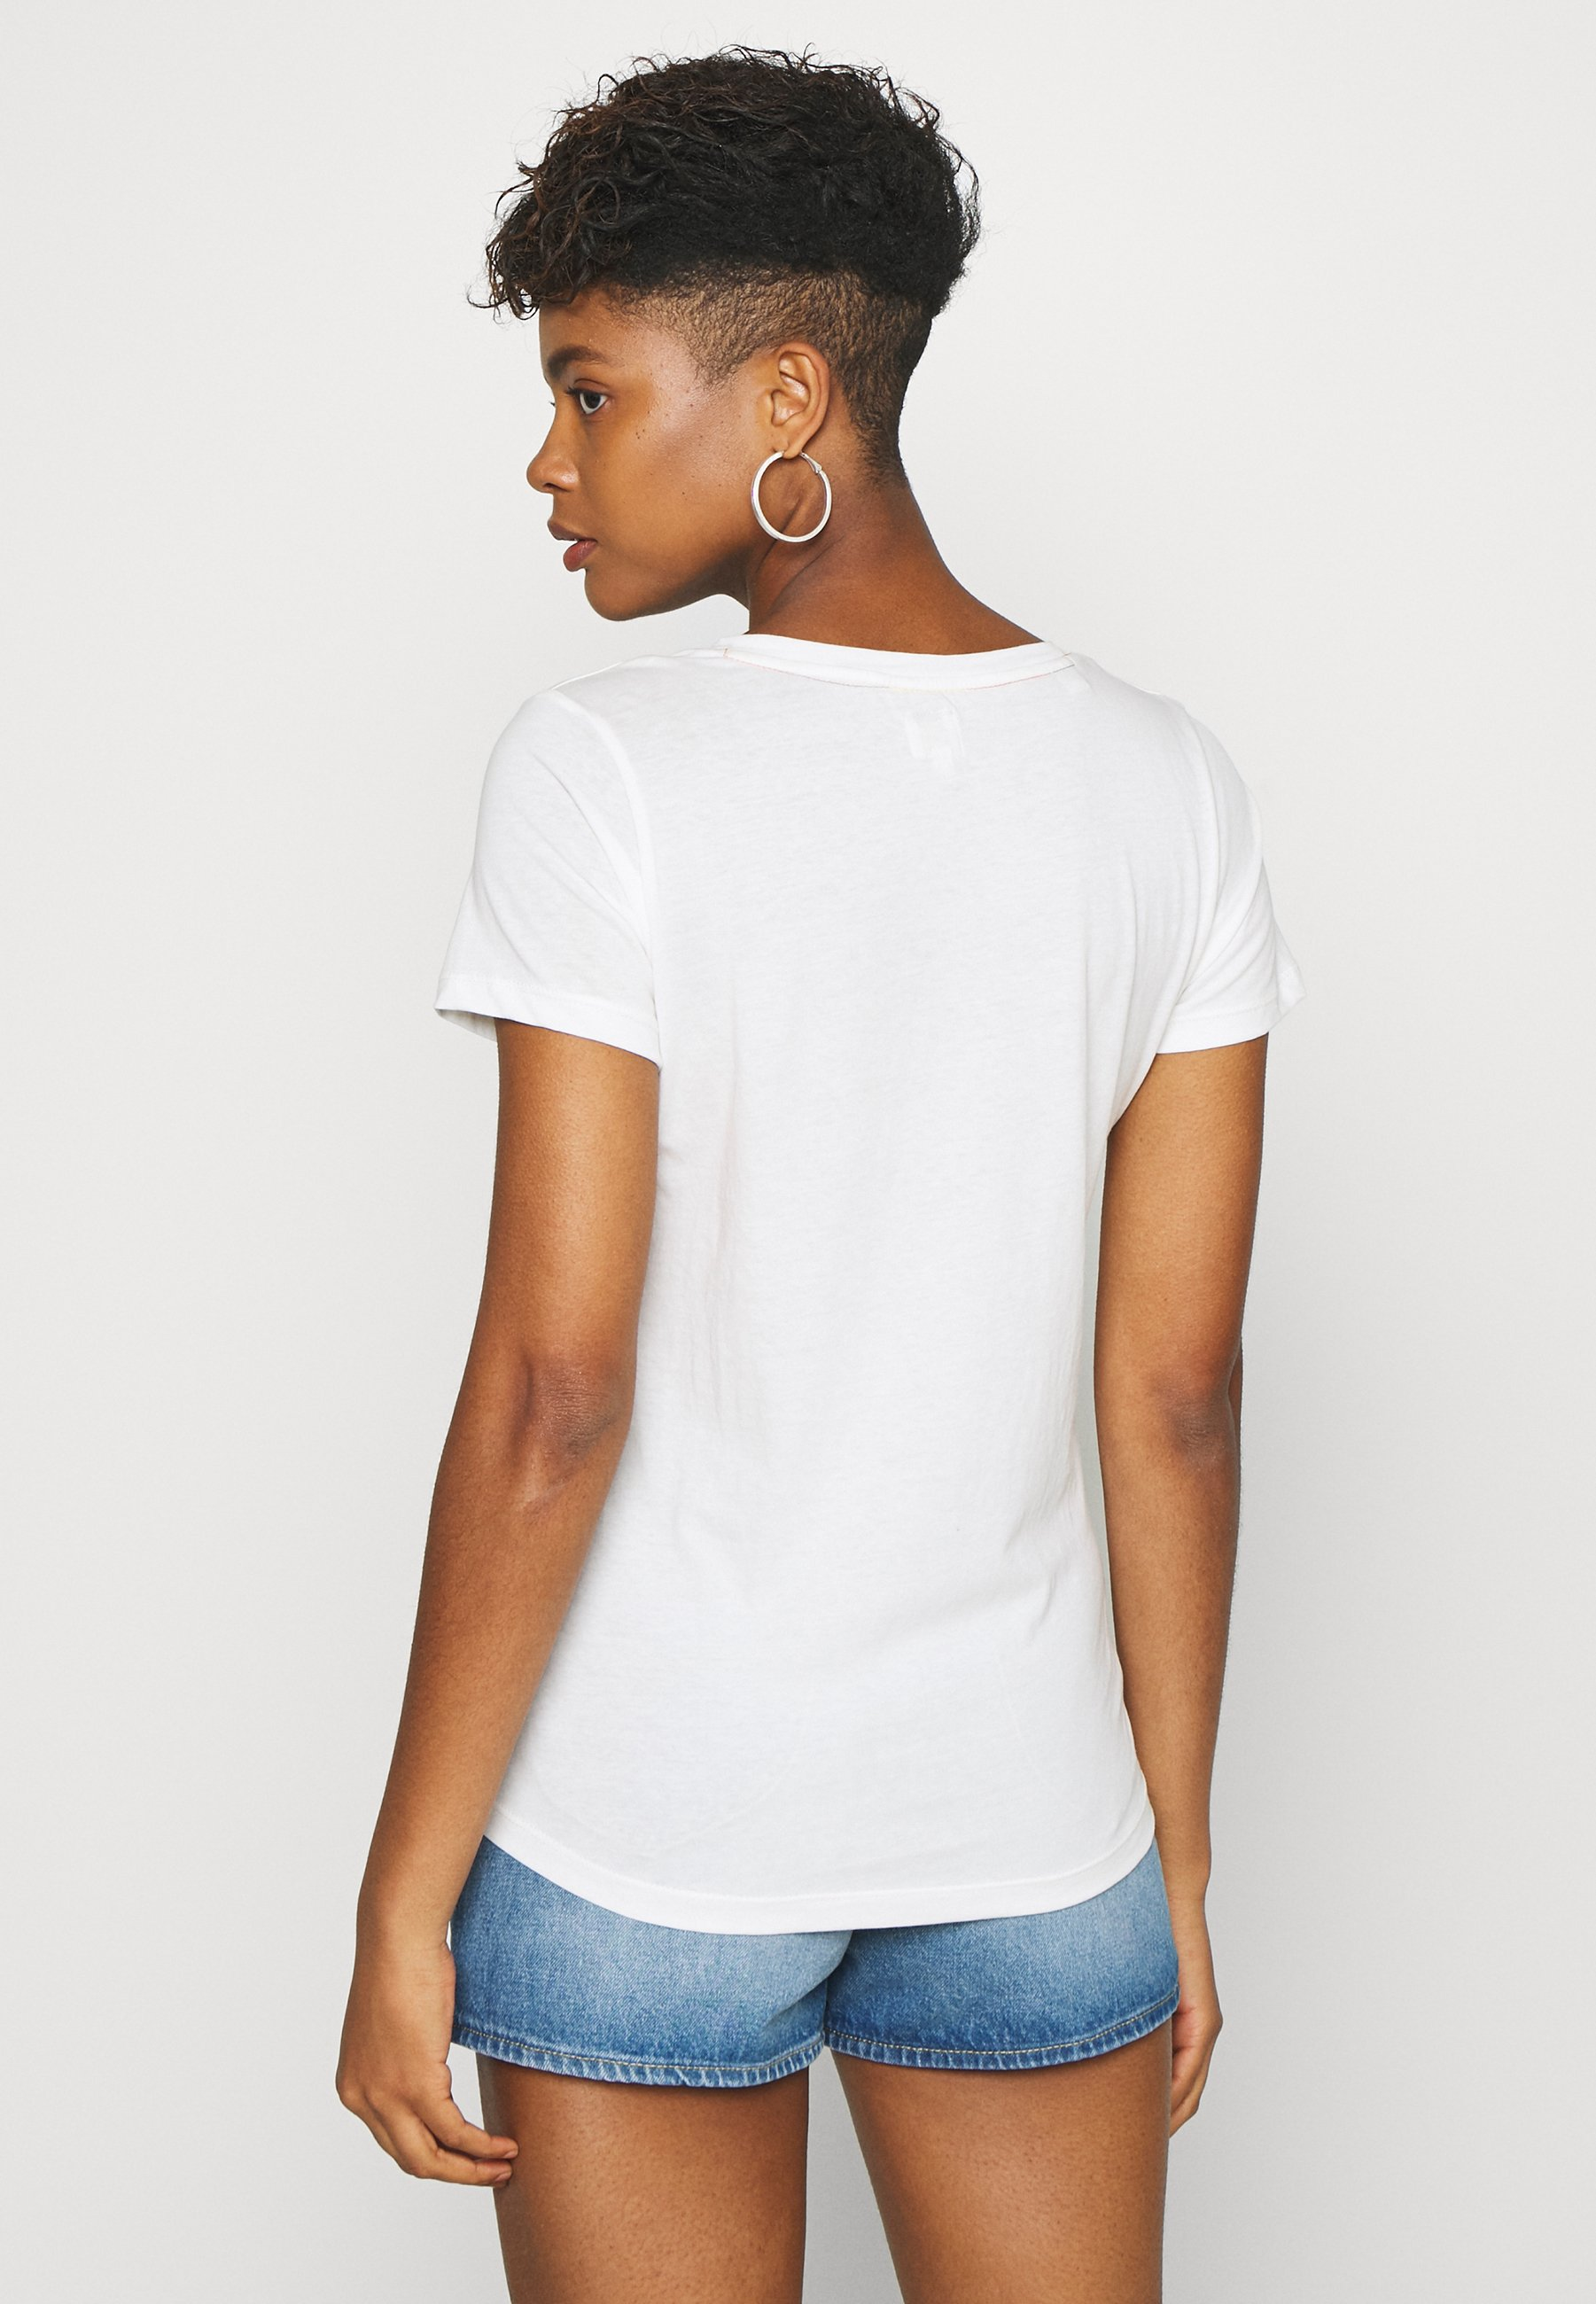 Lee Pride V Neck Tee - T-shirts Med Print White/hvit